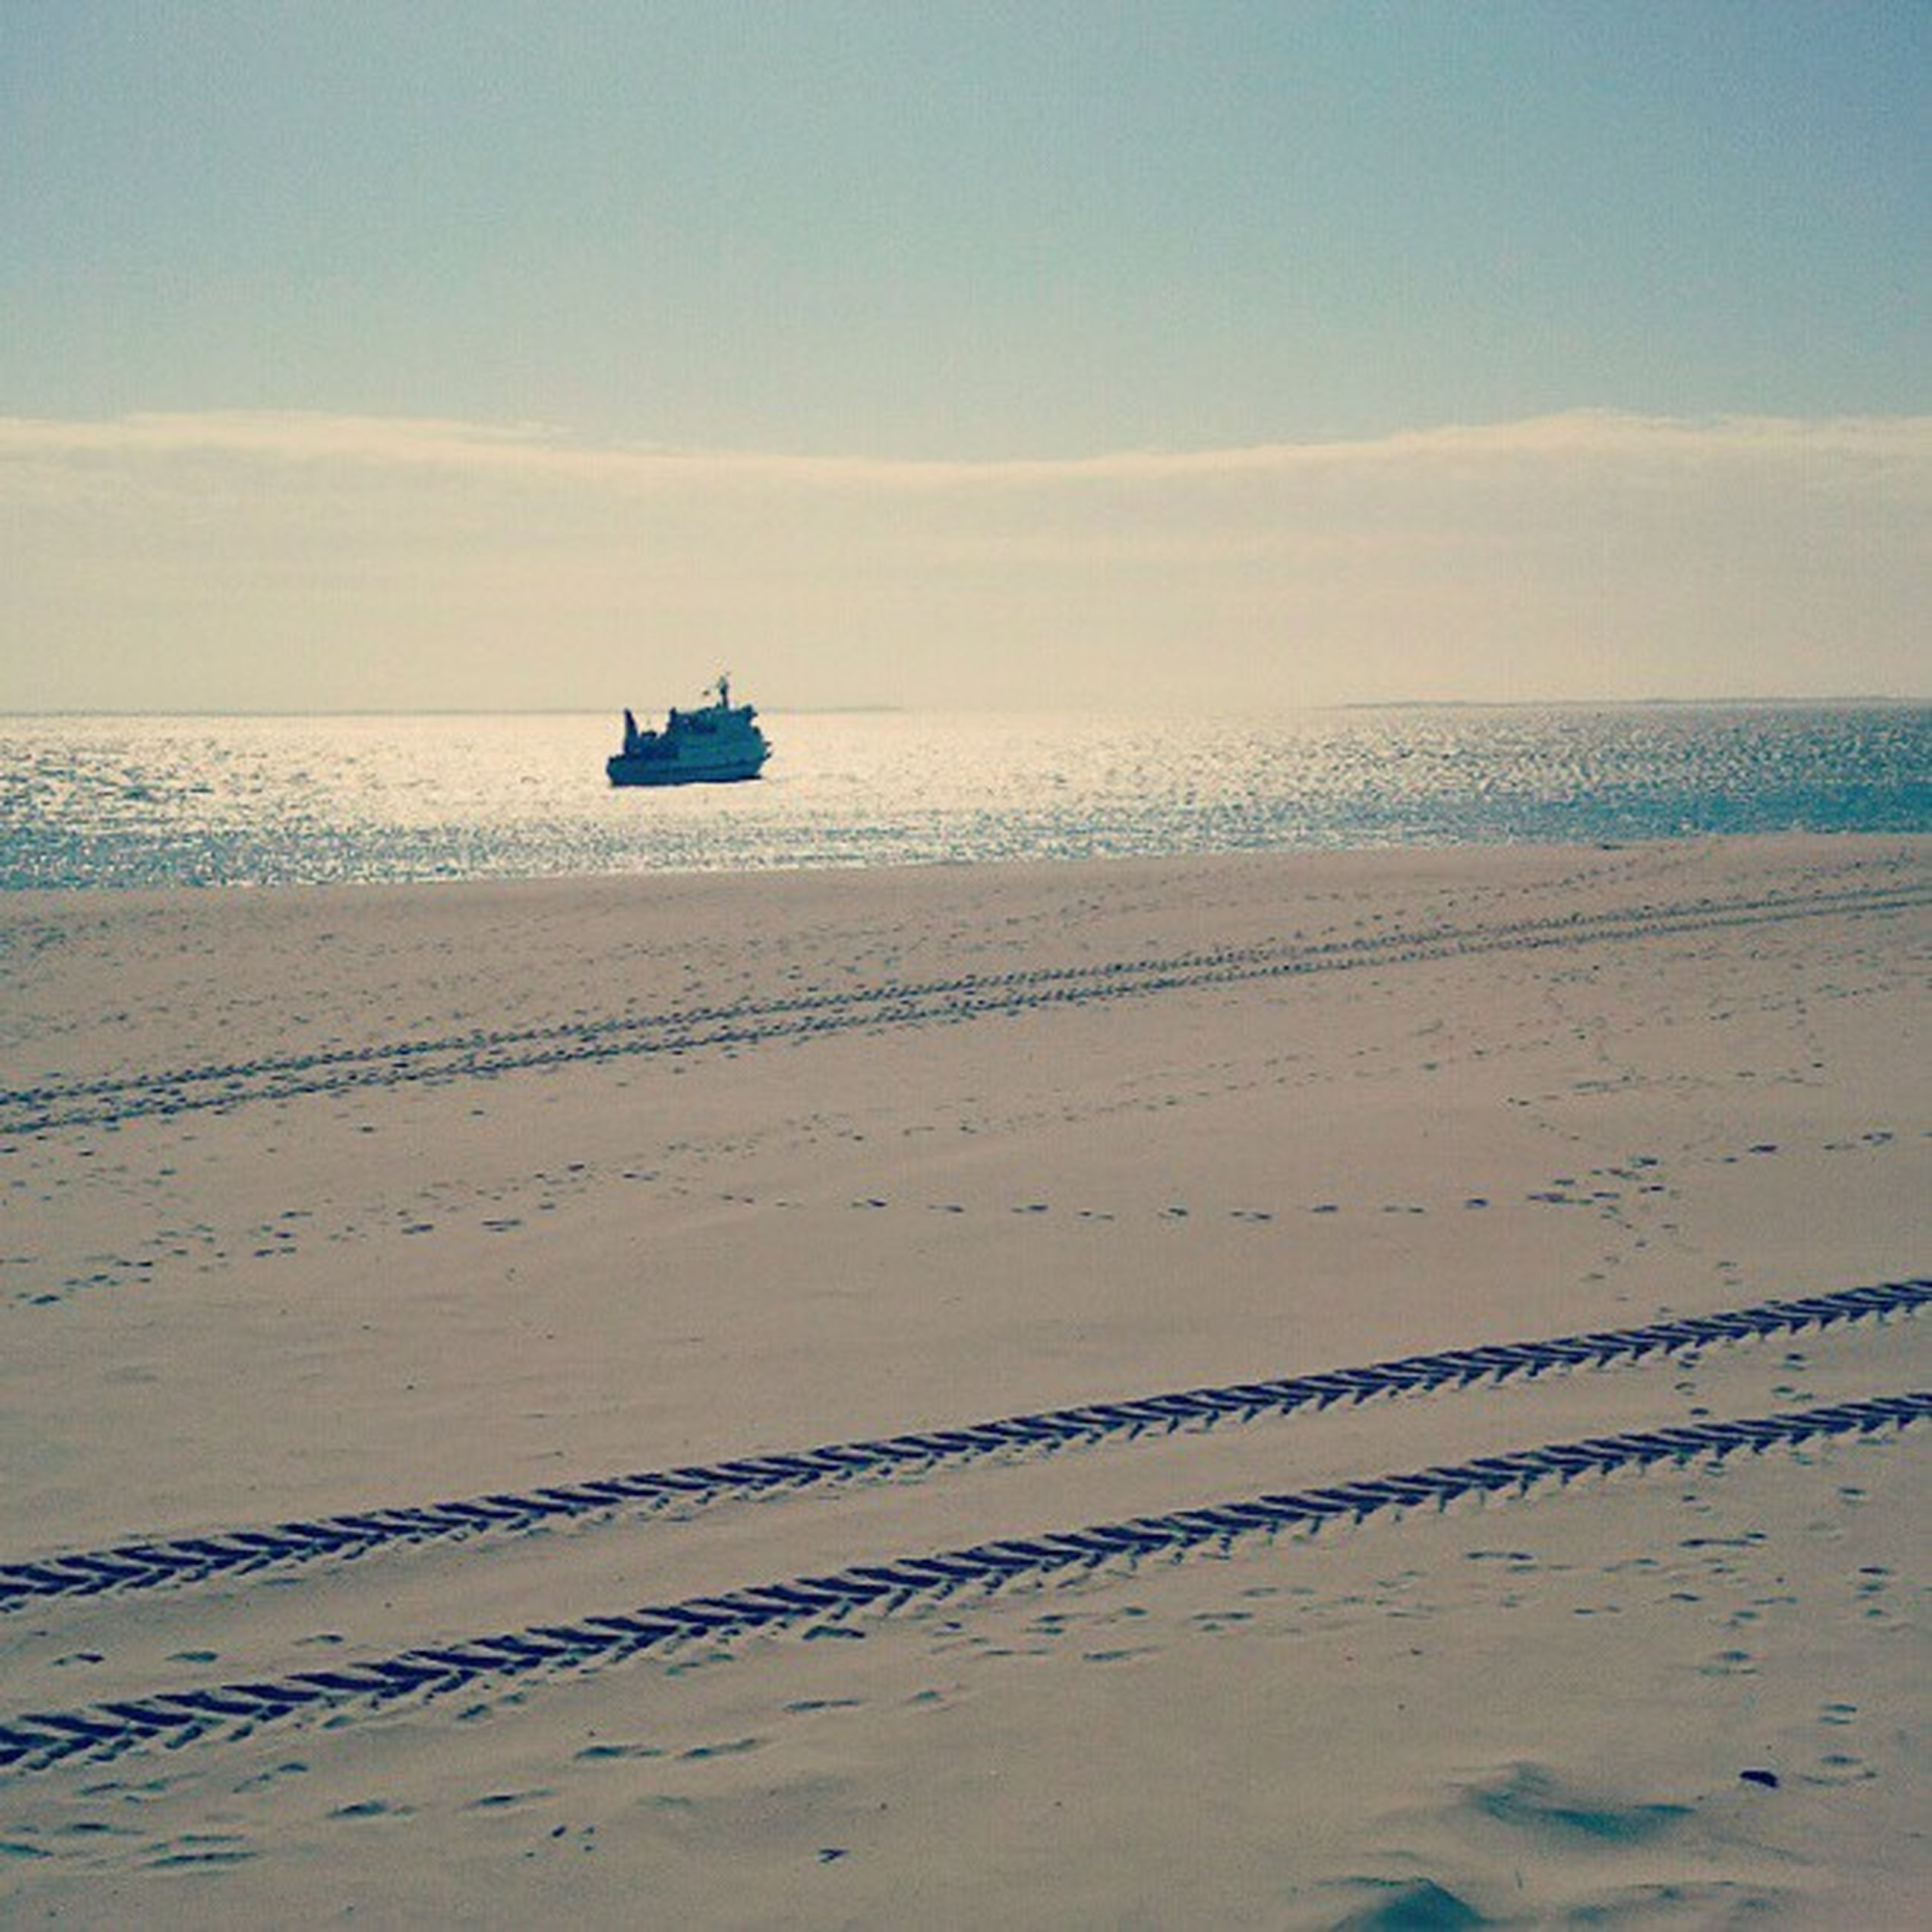 sea, beach, sand, horizon over water, water, shore, sky, tranquility, tranquil scene, transportation, scenics, beauty in nature, nature, nautical vessel, mode of transport, idyllic, outdoors, incidental people, boat, coastline